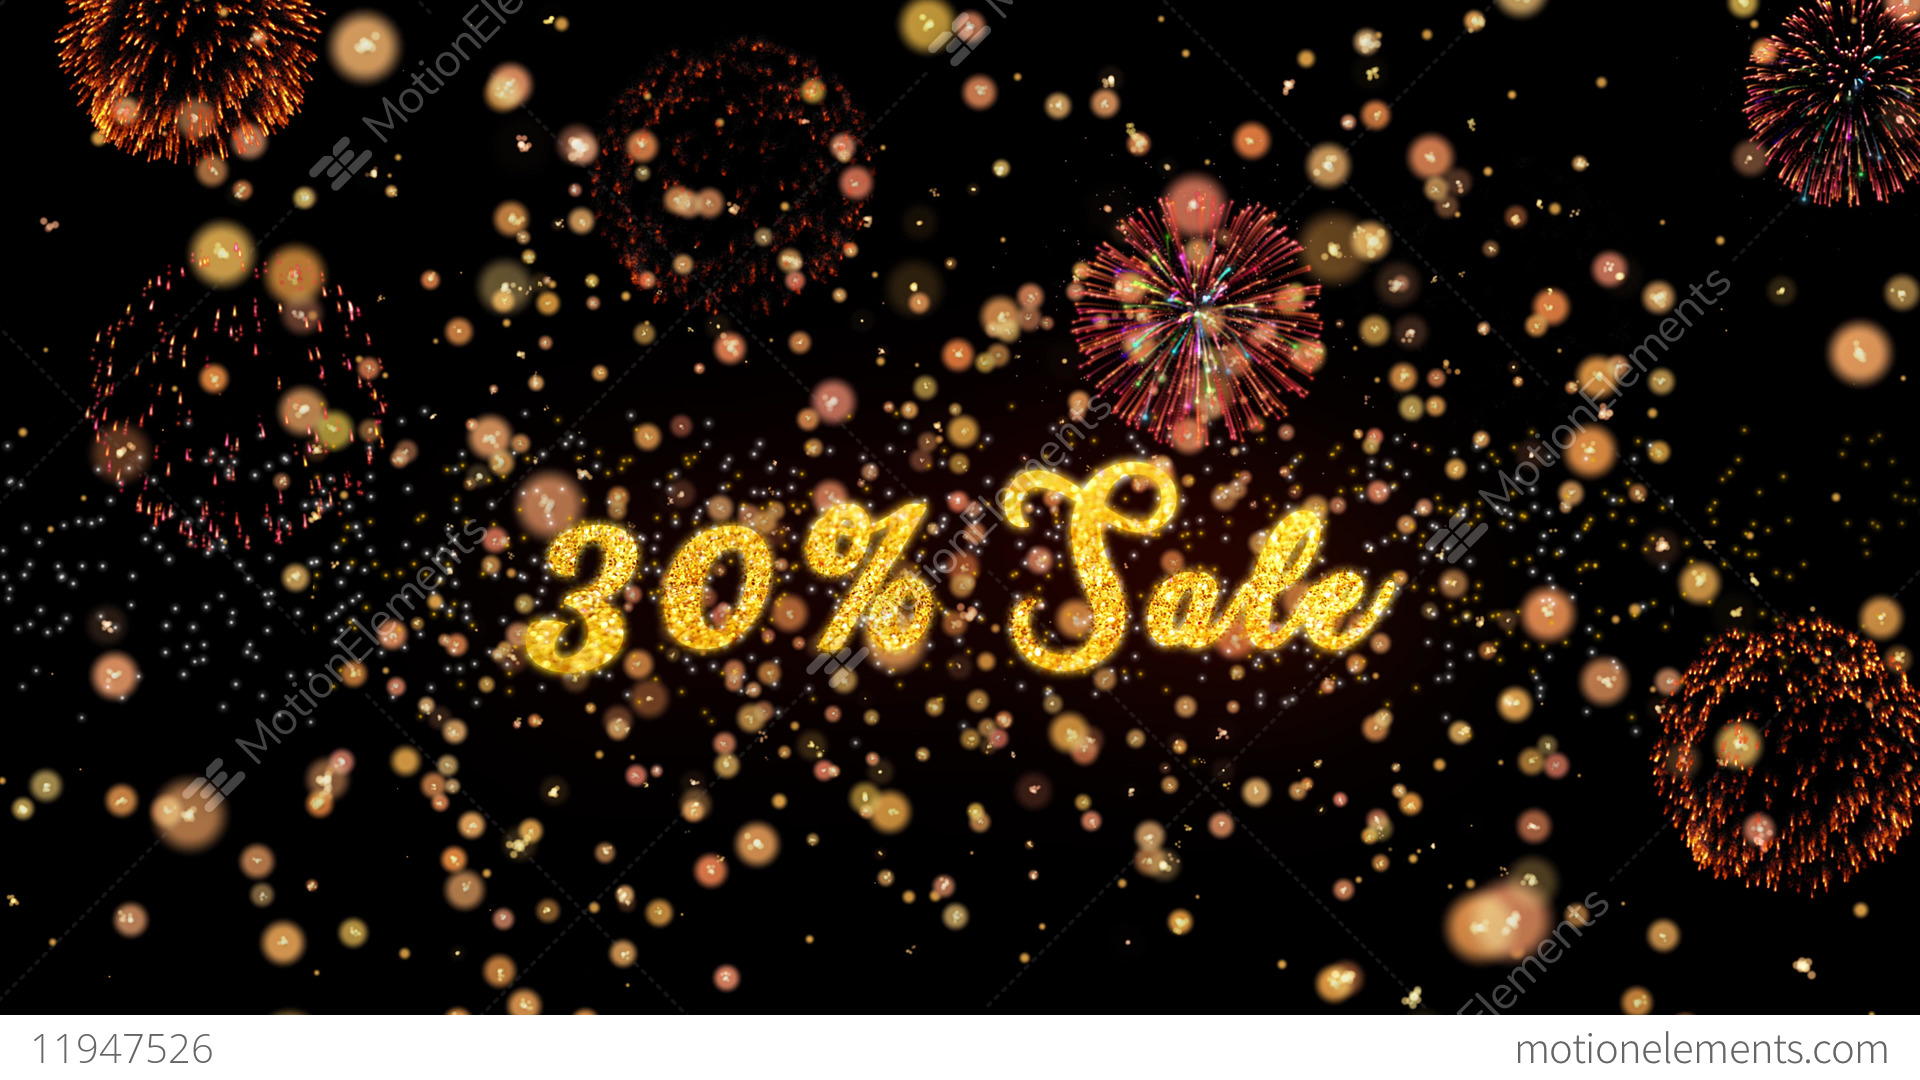 30 sale abstract particles and glitter fireworks greeting card stock 30 sale abstract particles and glitter fireworks greeting stock video footage m4hsunfo